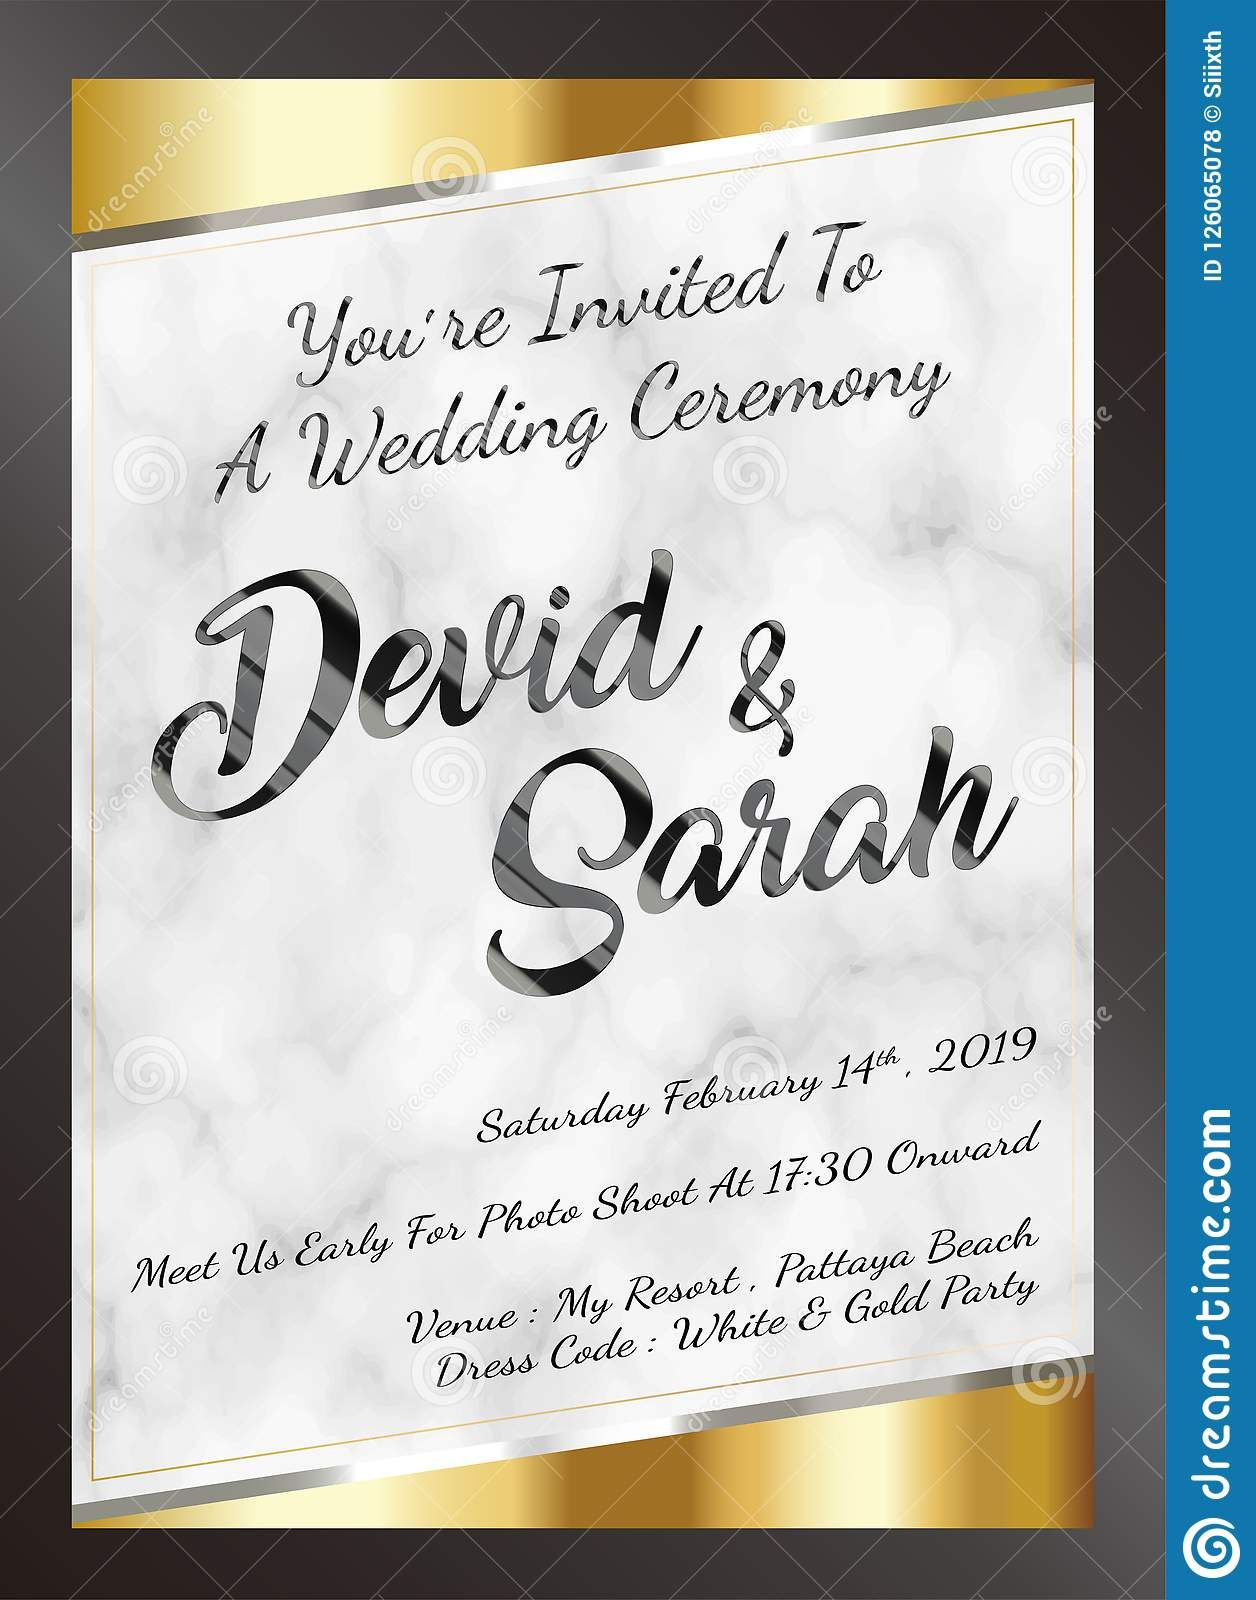 The Charming Sample Wedding Card Invitation Template Vector Eps Wedding Invitation Samples Wedding Invitation Card Template Wedding Invitation Wording Examples